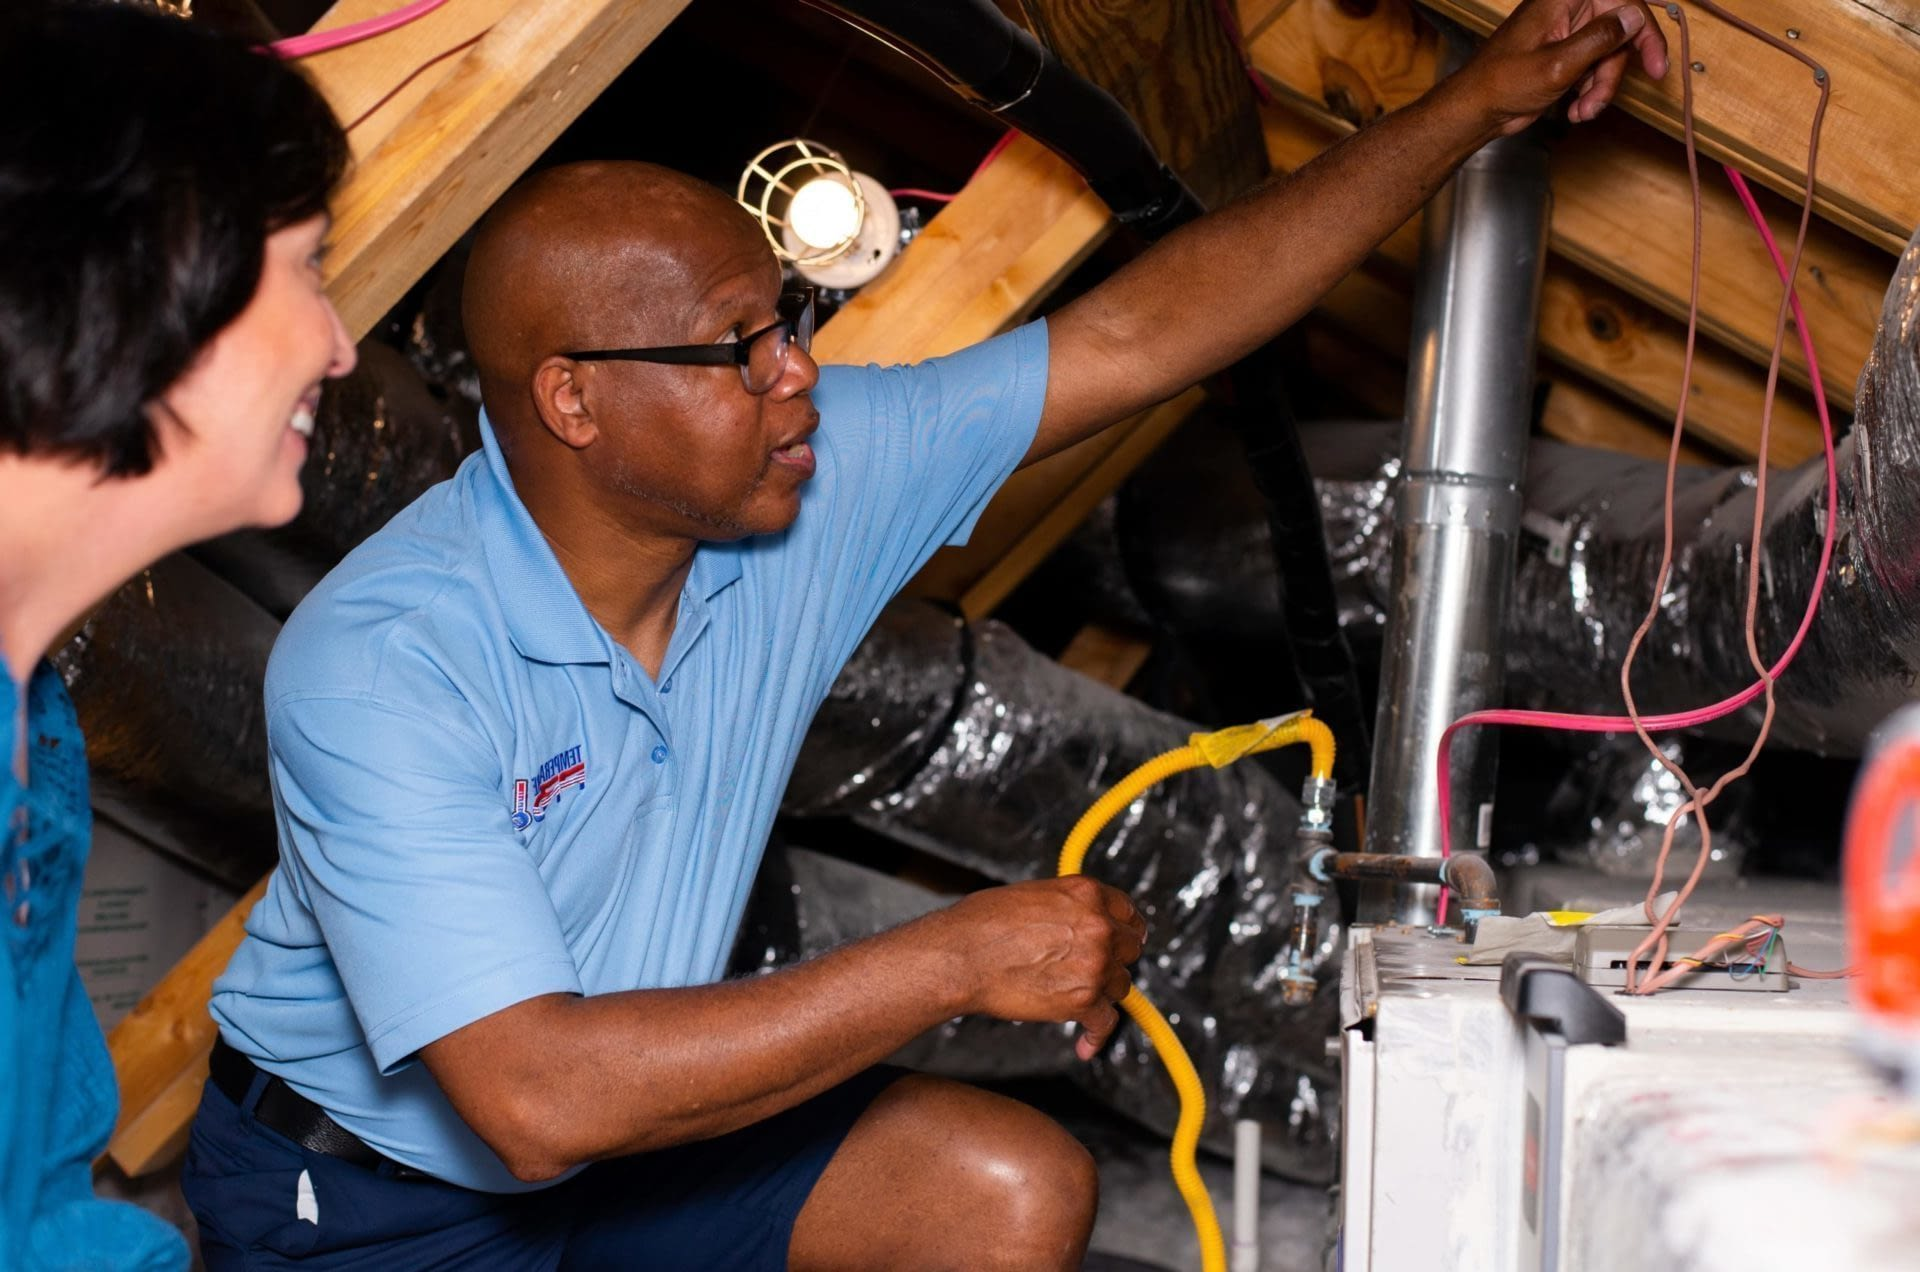 An HVAC technician showing a customer vents and pipes in an attic